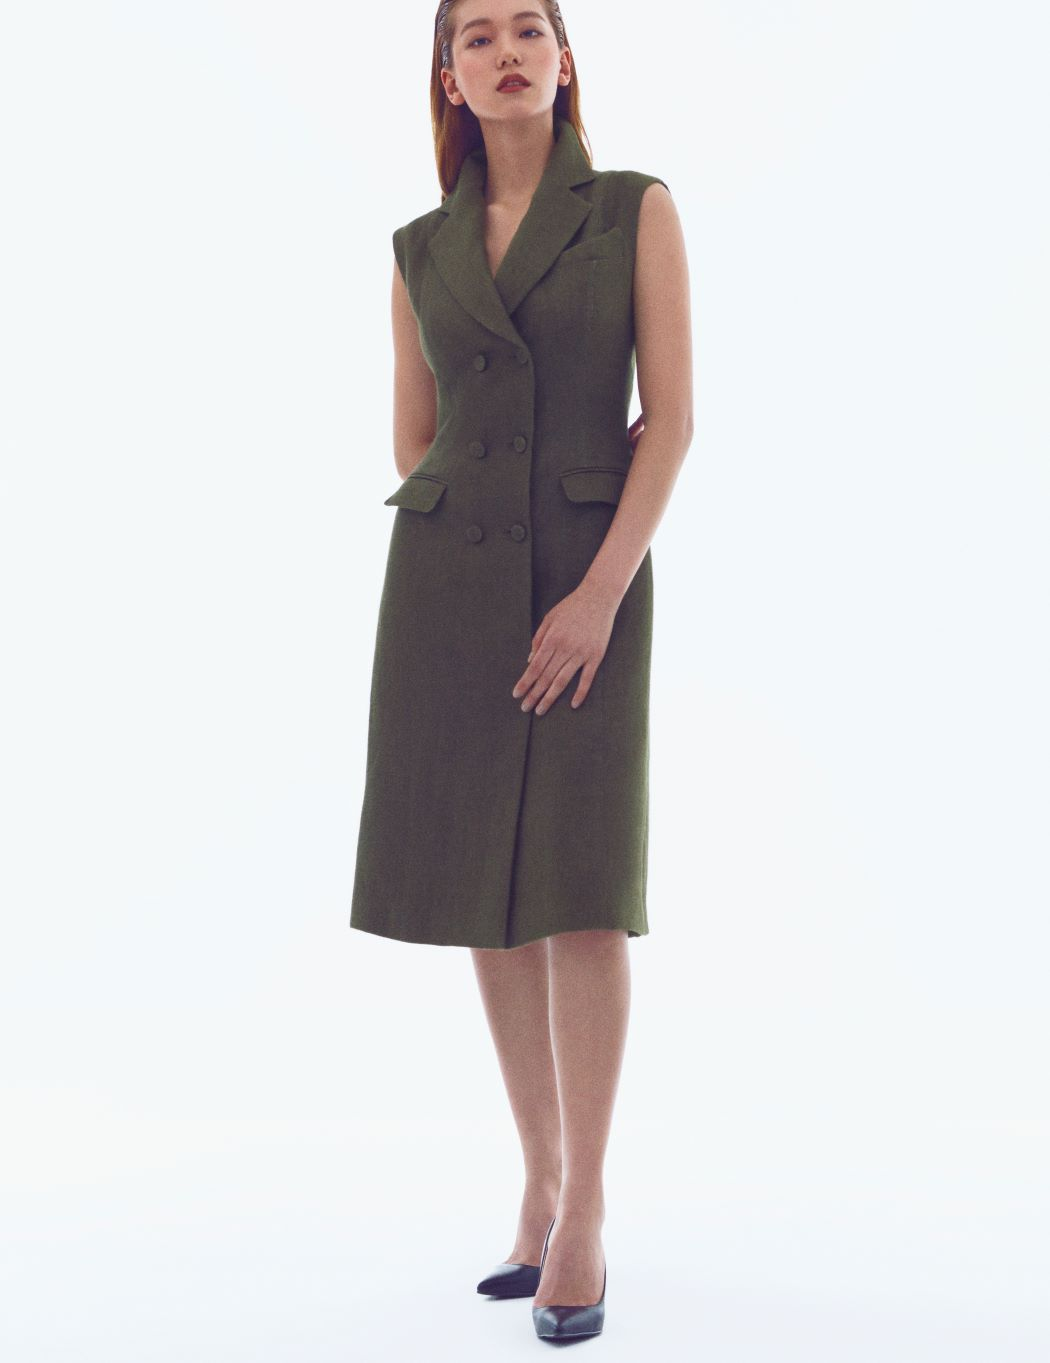 KHAKI LINEN DOUBLE BREASTED DRESS